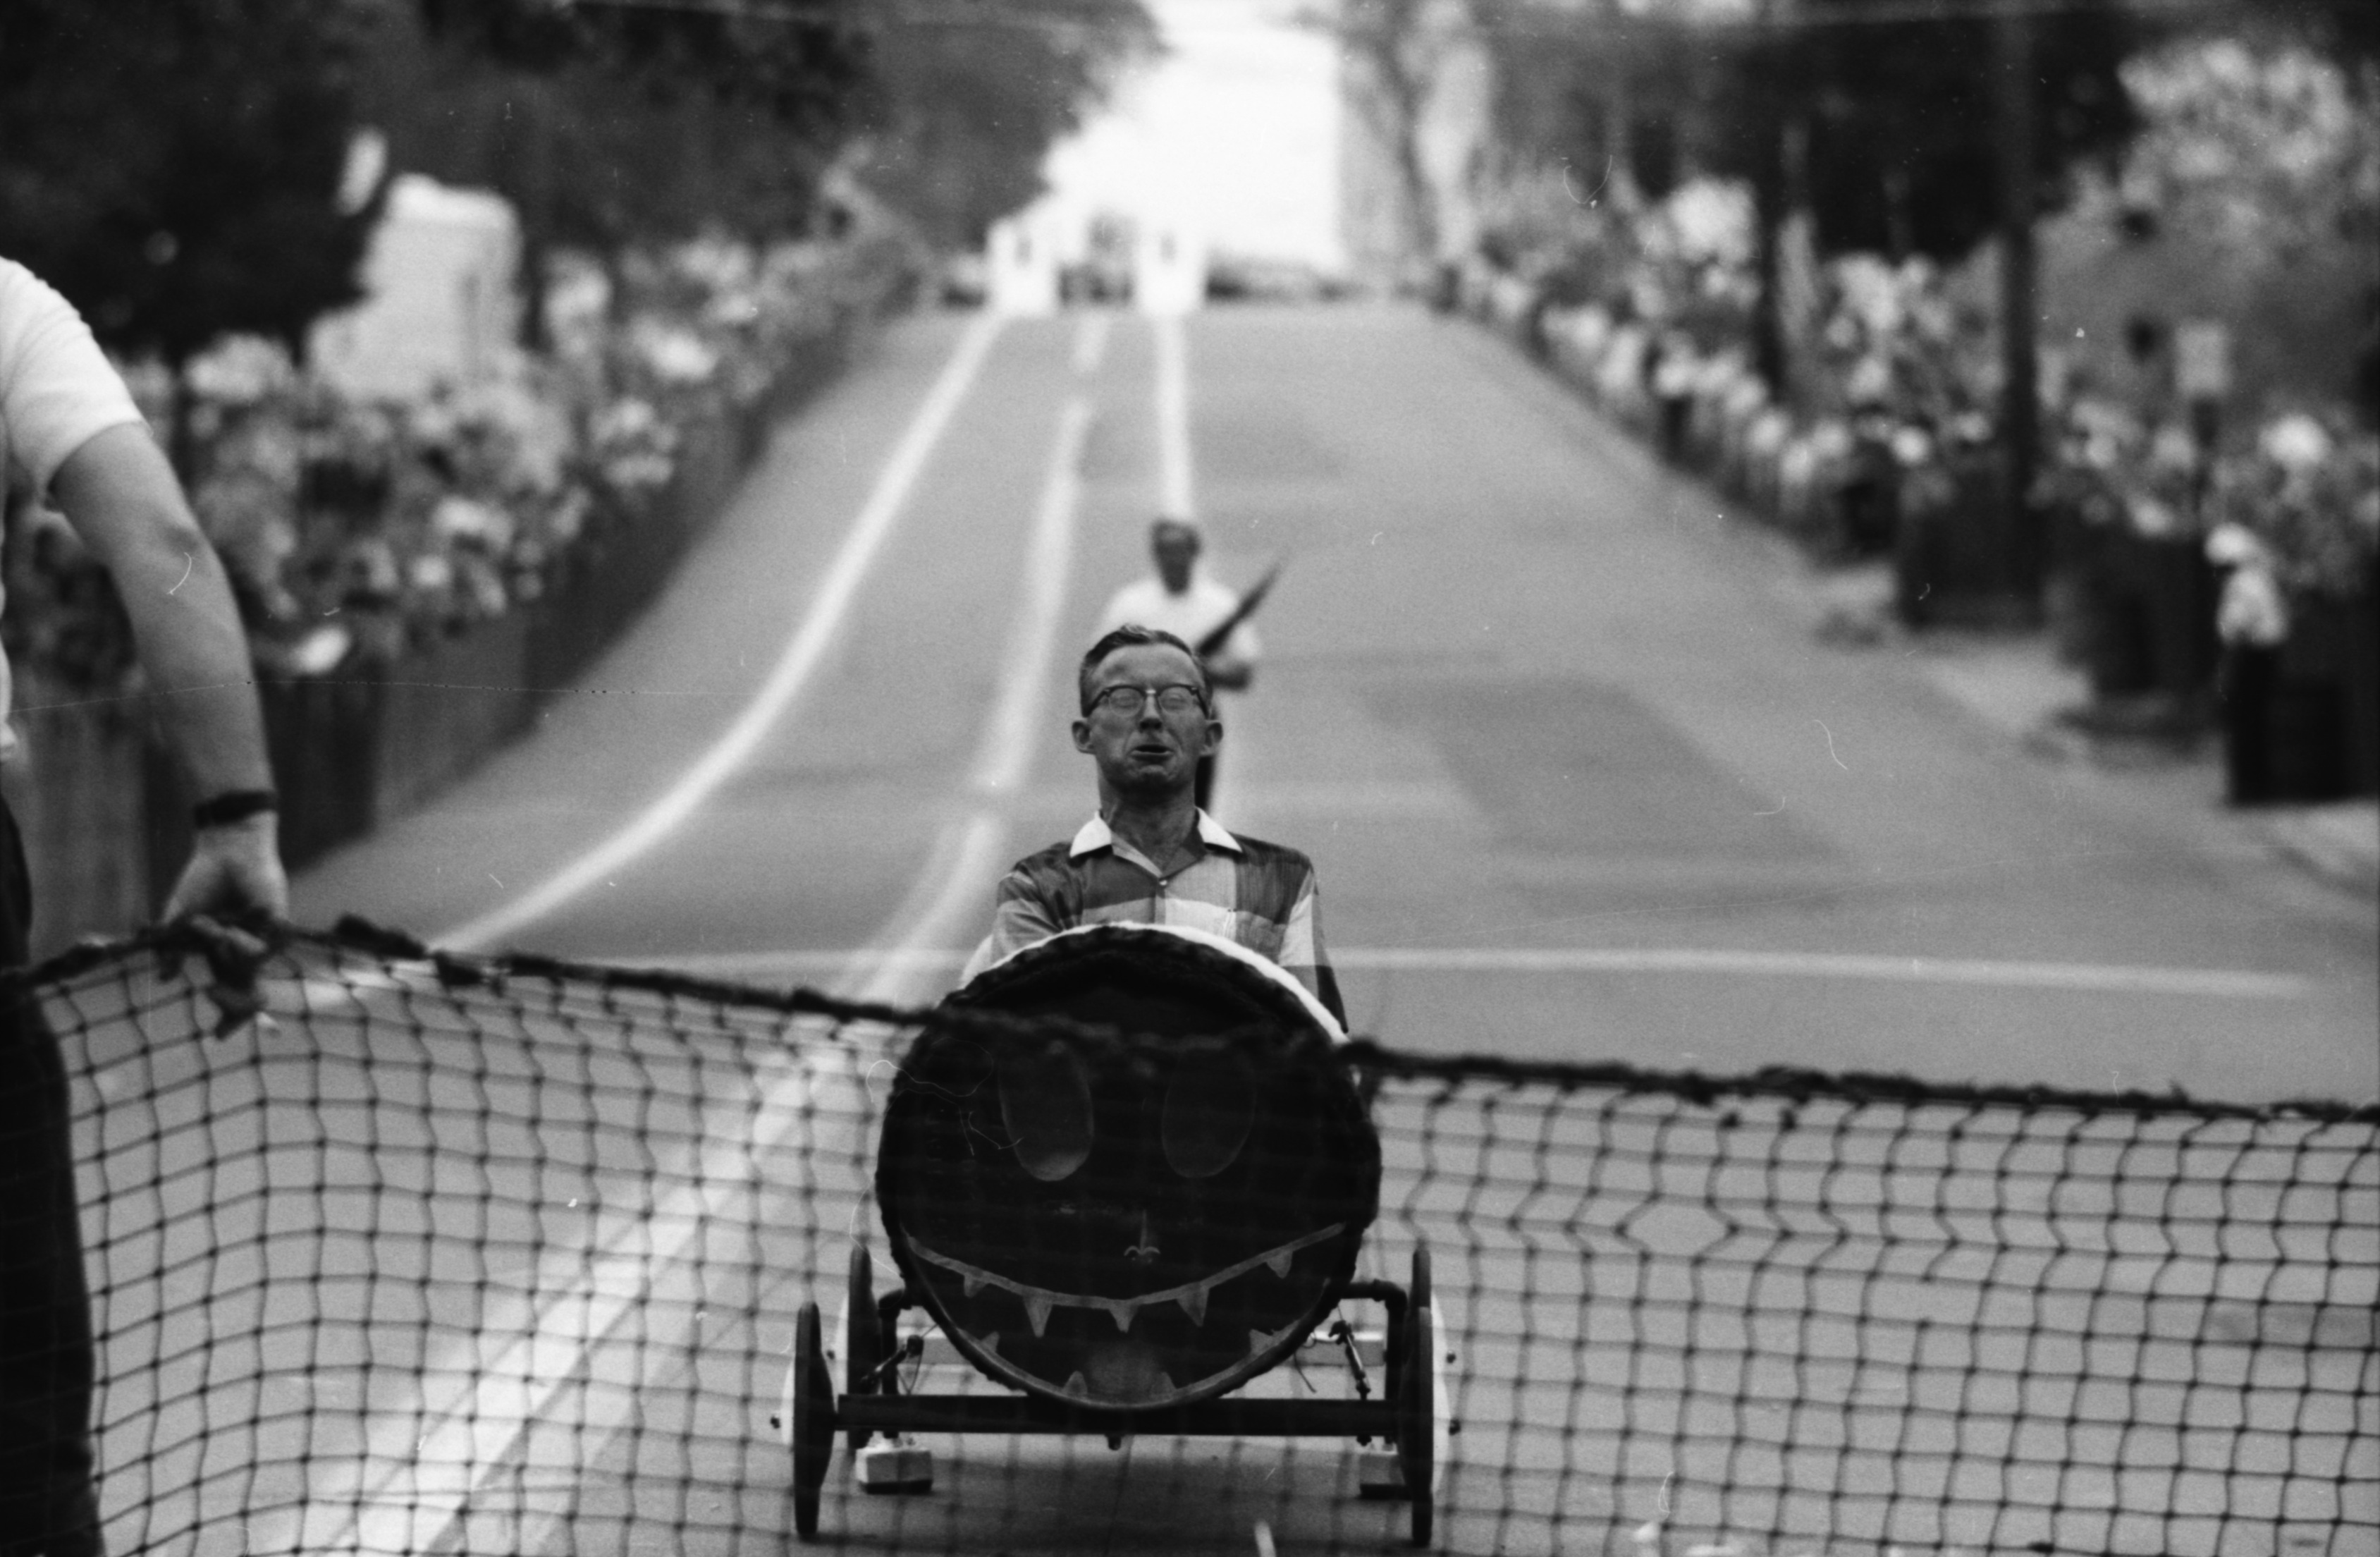 Ann Arbor Mayor Wendell Hulcher crosses the finish line in the Oil Can Derby, July 24, 1965	 image